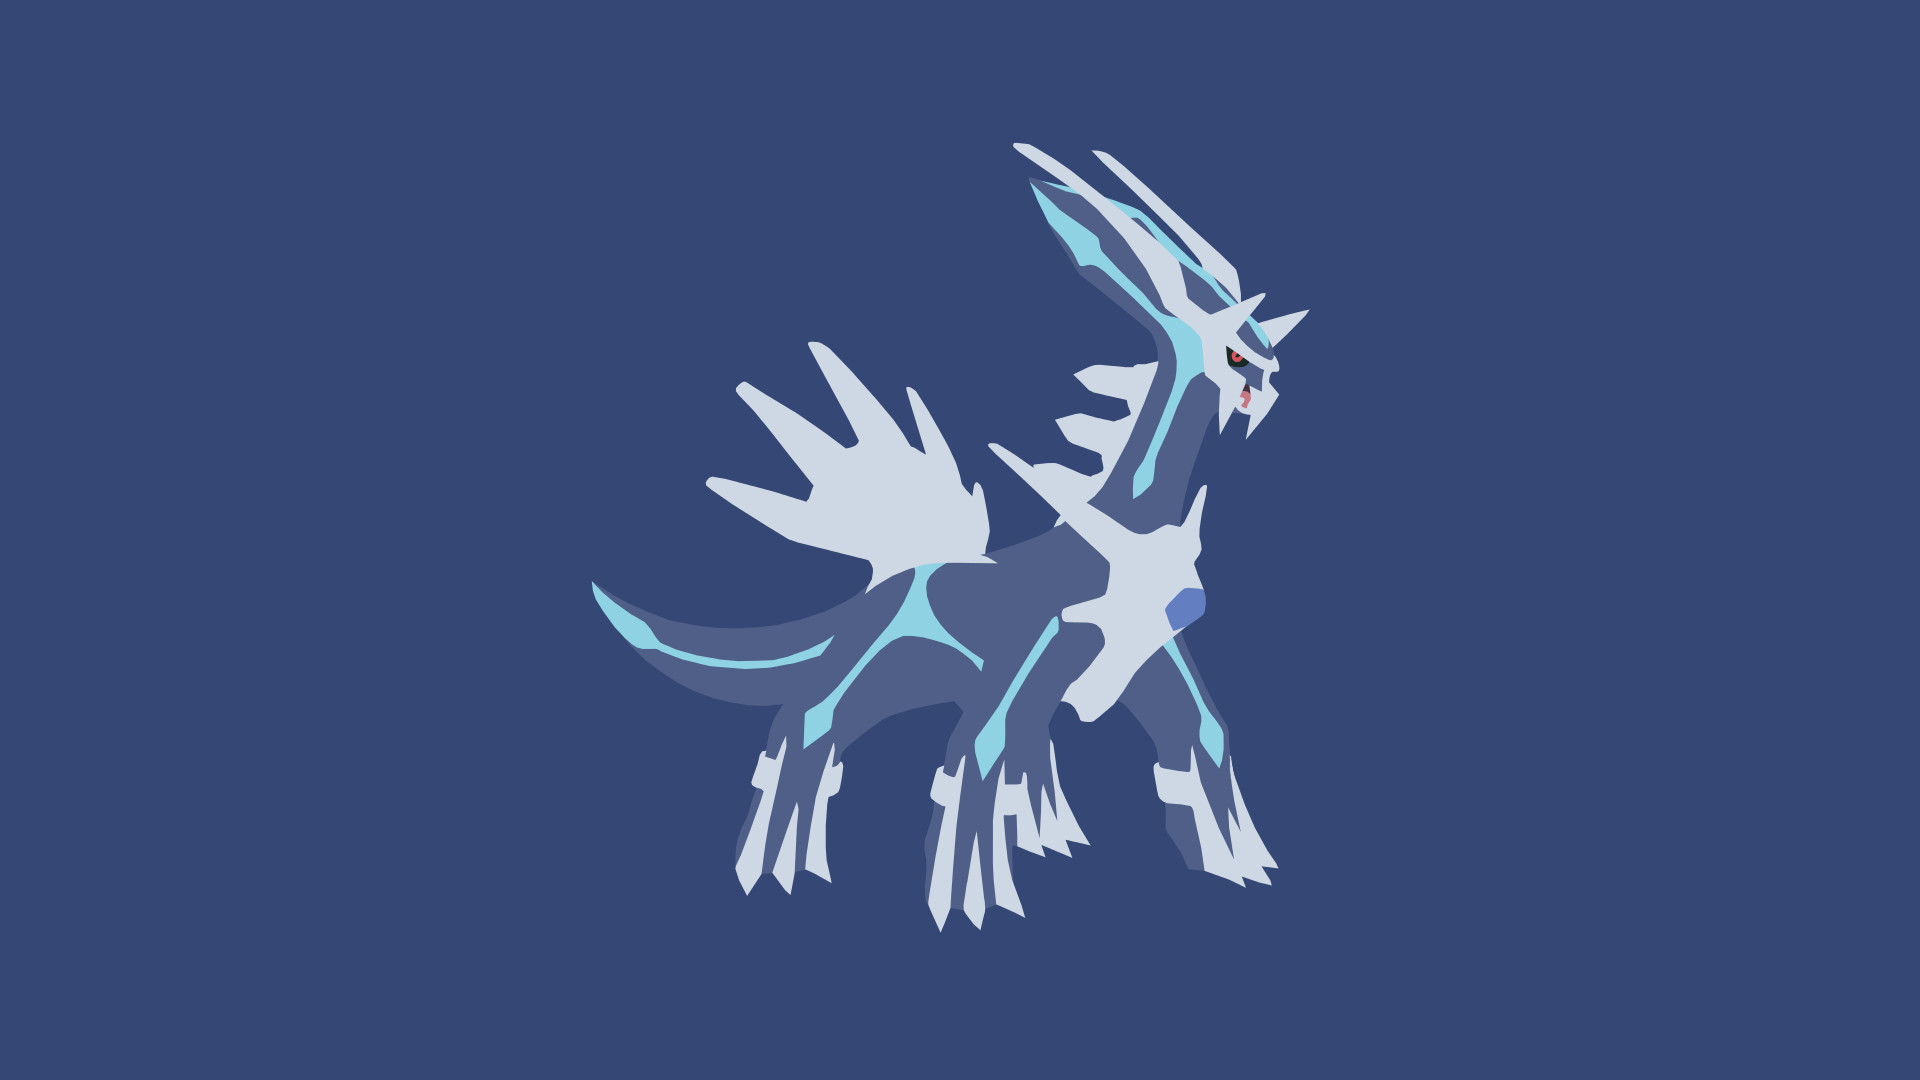 1920x1080 ... Wallpaper Abyss Dialga by TheBlackSavior on DeviantArt ...